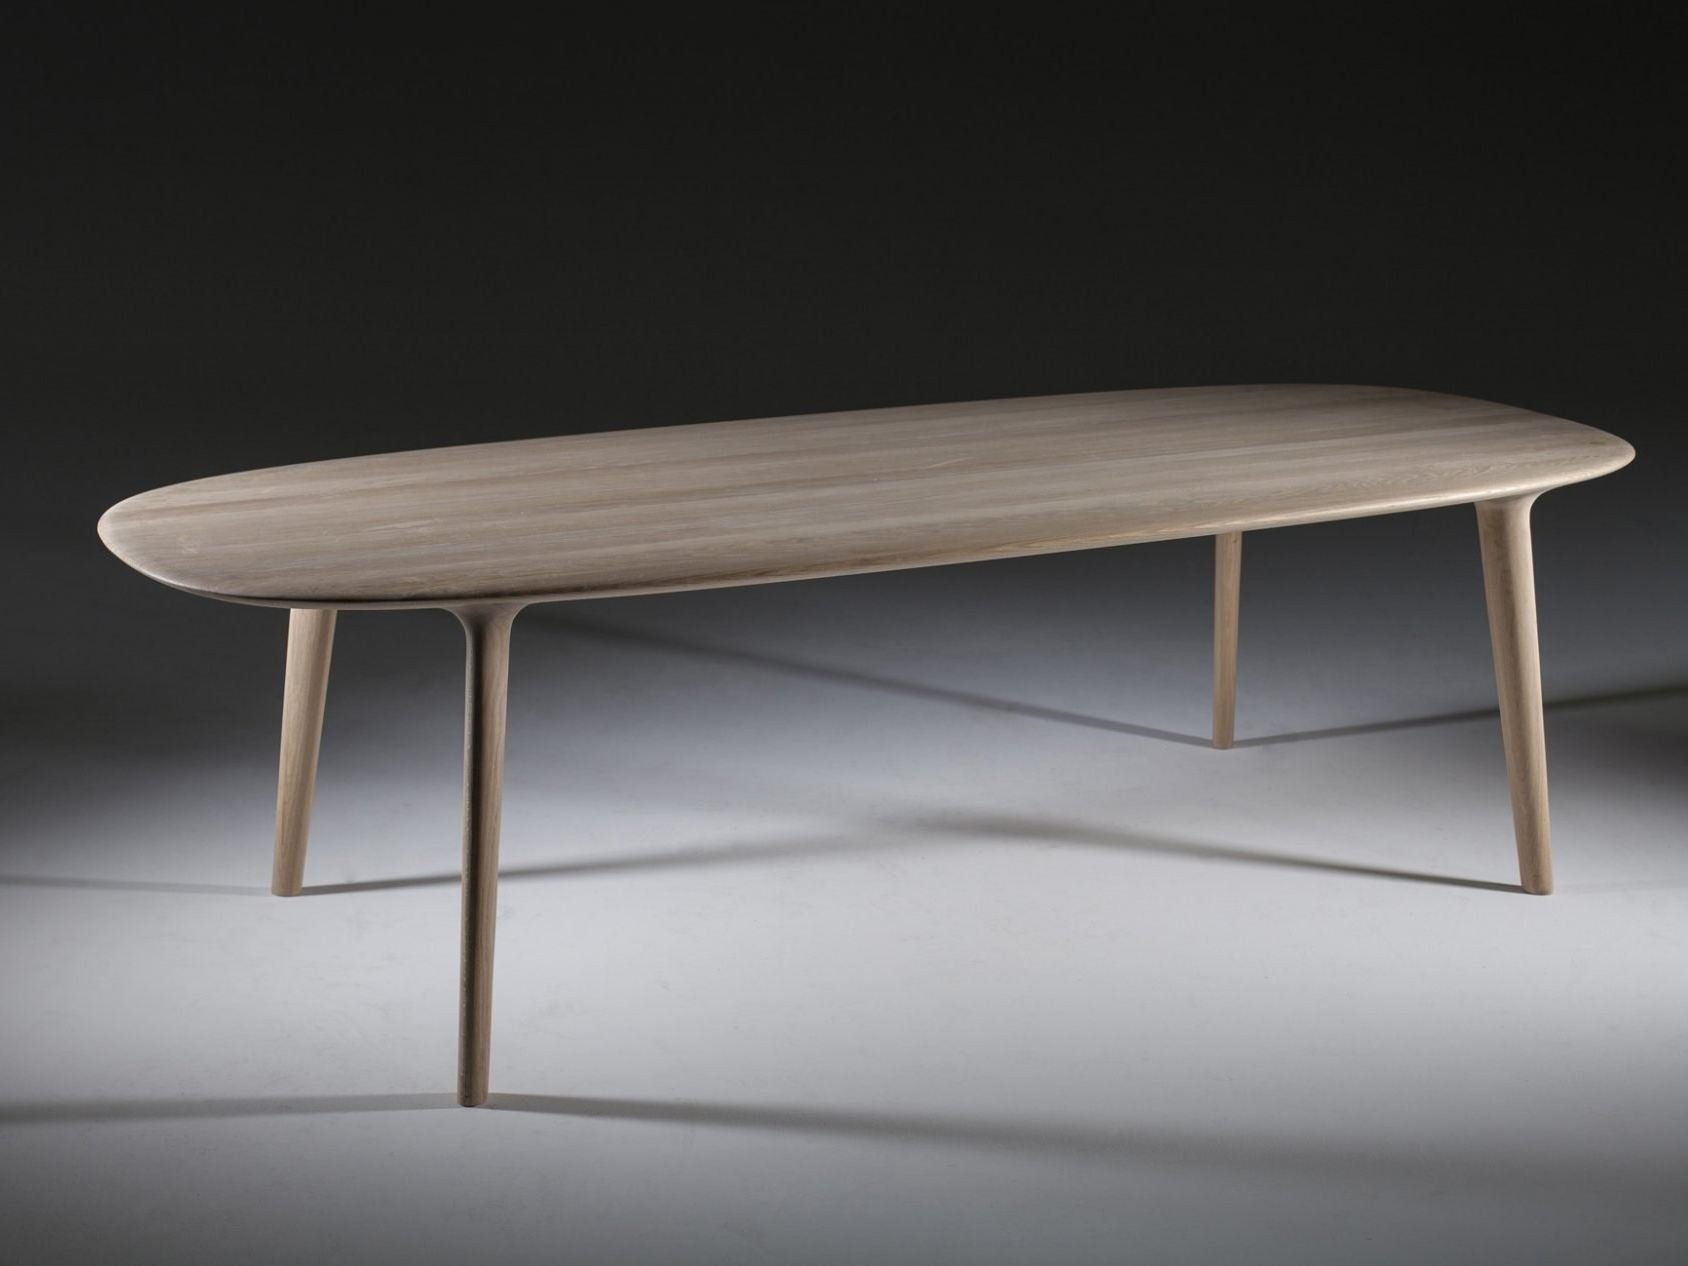 Table Ovale En Bois - TABLE OVALE EN BOIS LUC COLLECTION LUC BY ARTISAN DESIGN RUDJER NOVAK MIKULIC, MARIJA RUZIC